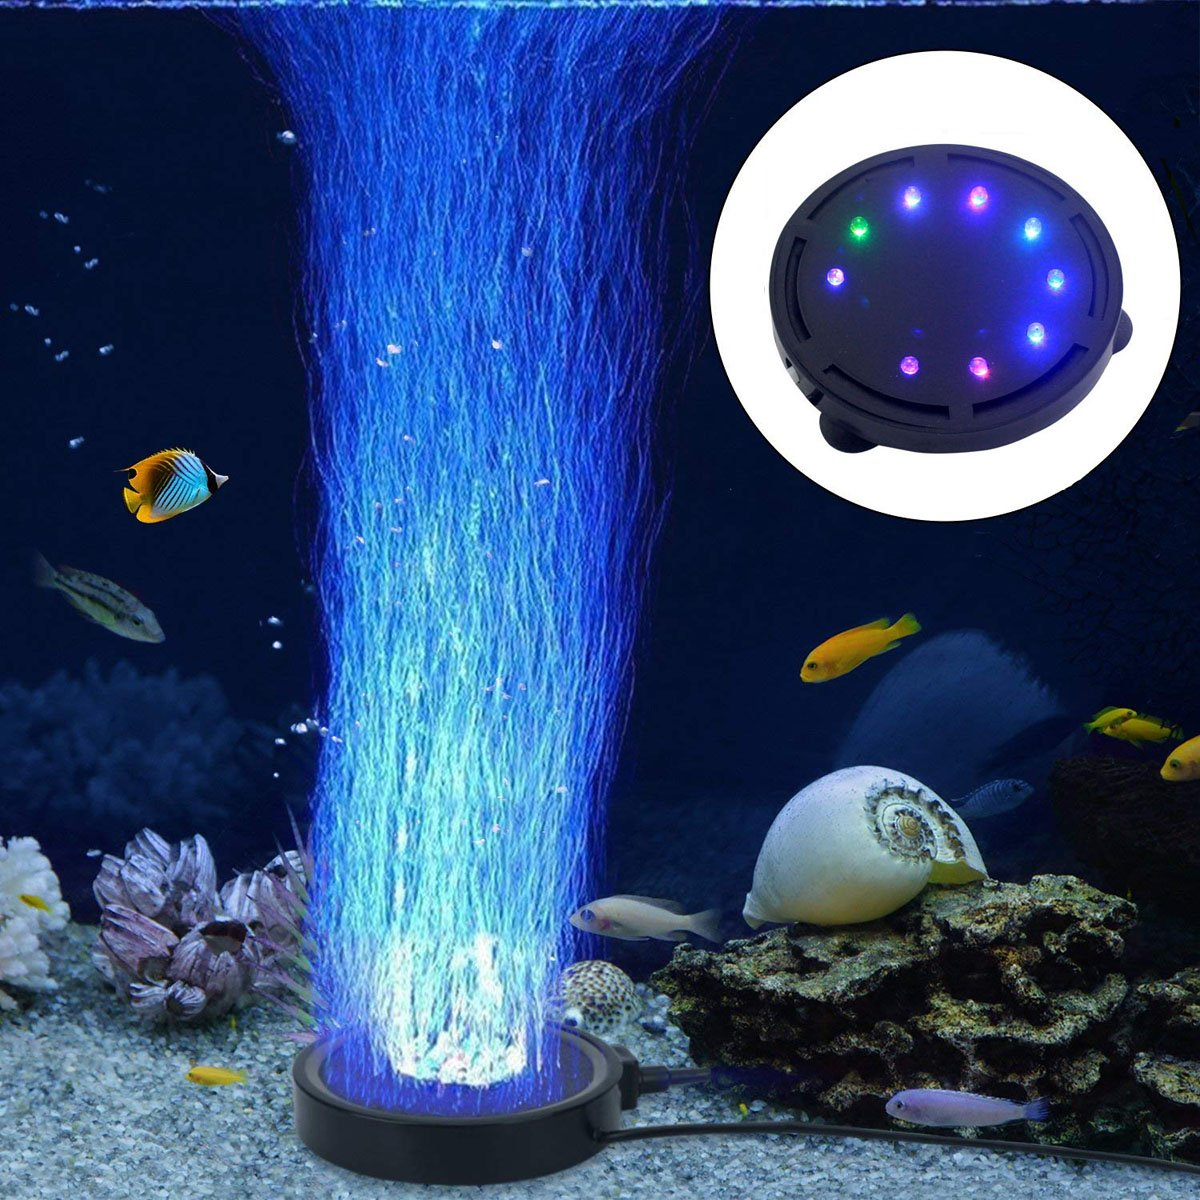 LONDAFISH Aquarium Bubble Light LED Aquarium Fish Tank Air Stone Light Air Pump Bubble Stone Lamp